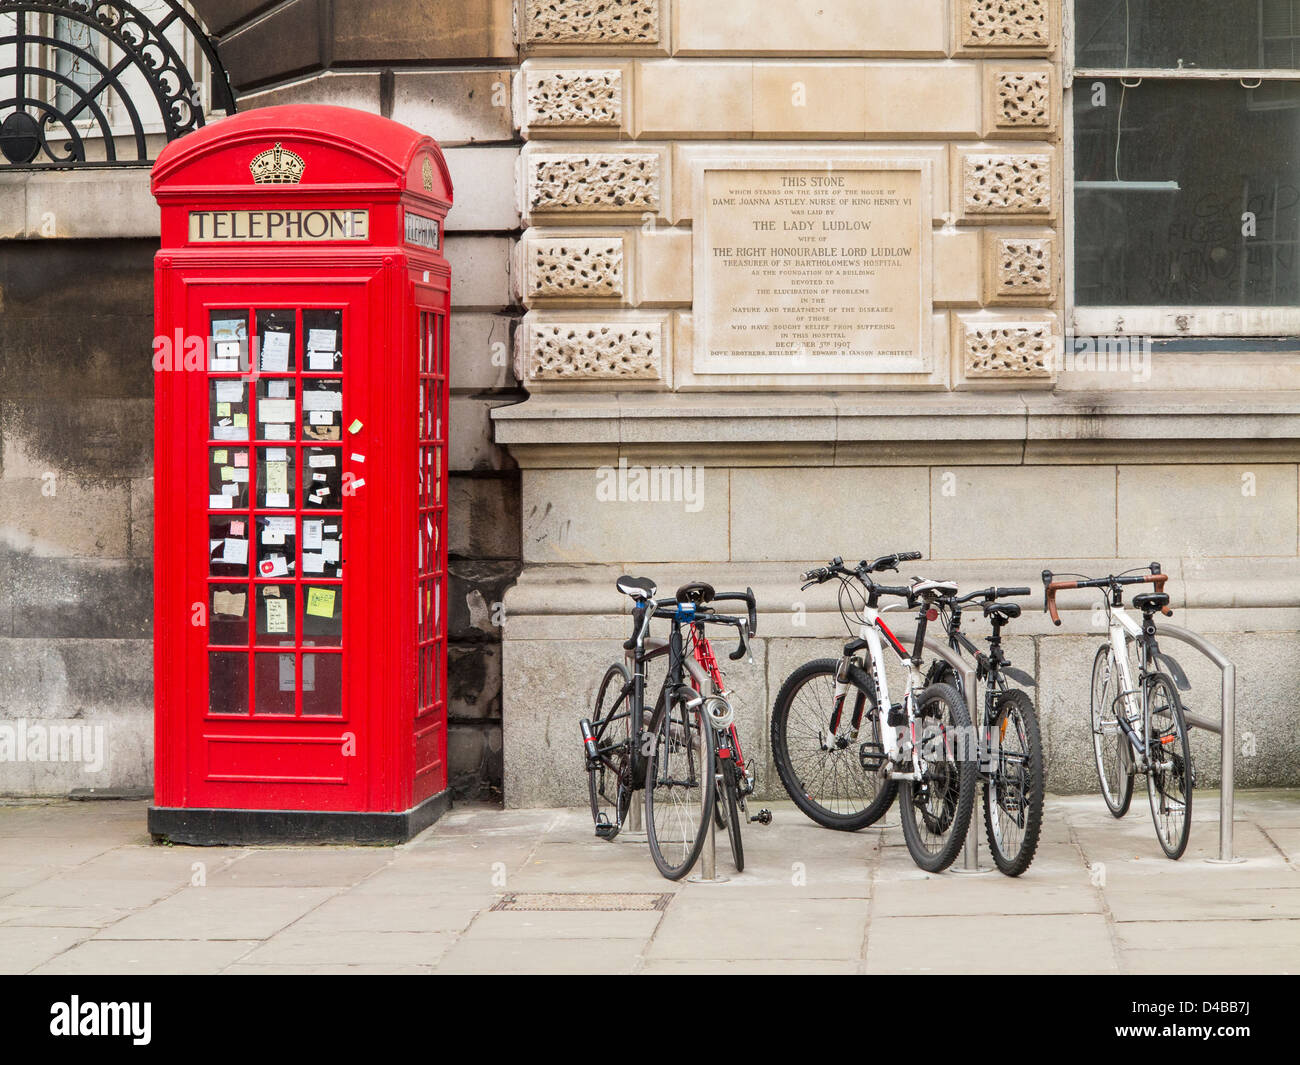 Red old style telephone box and parked bicycles in London, England - Stock Image